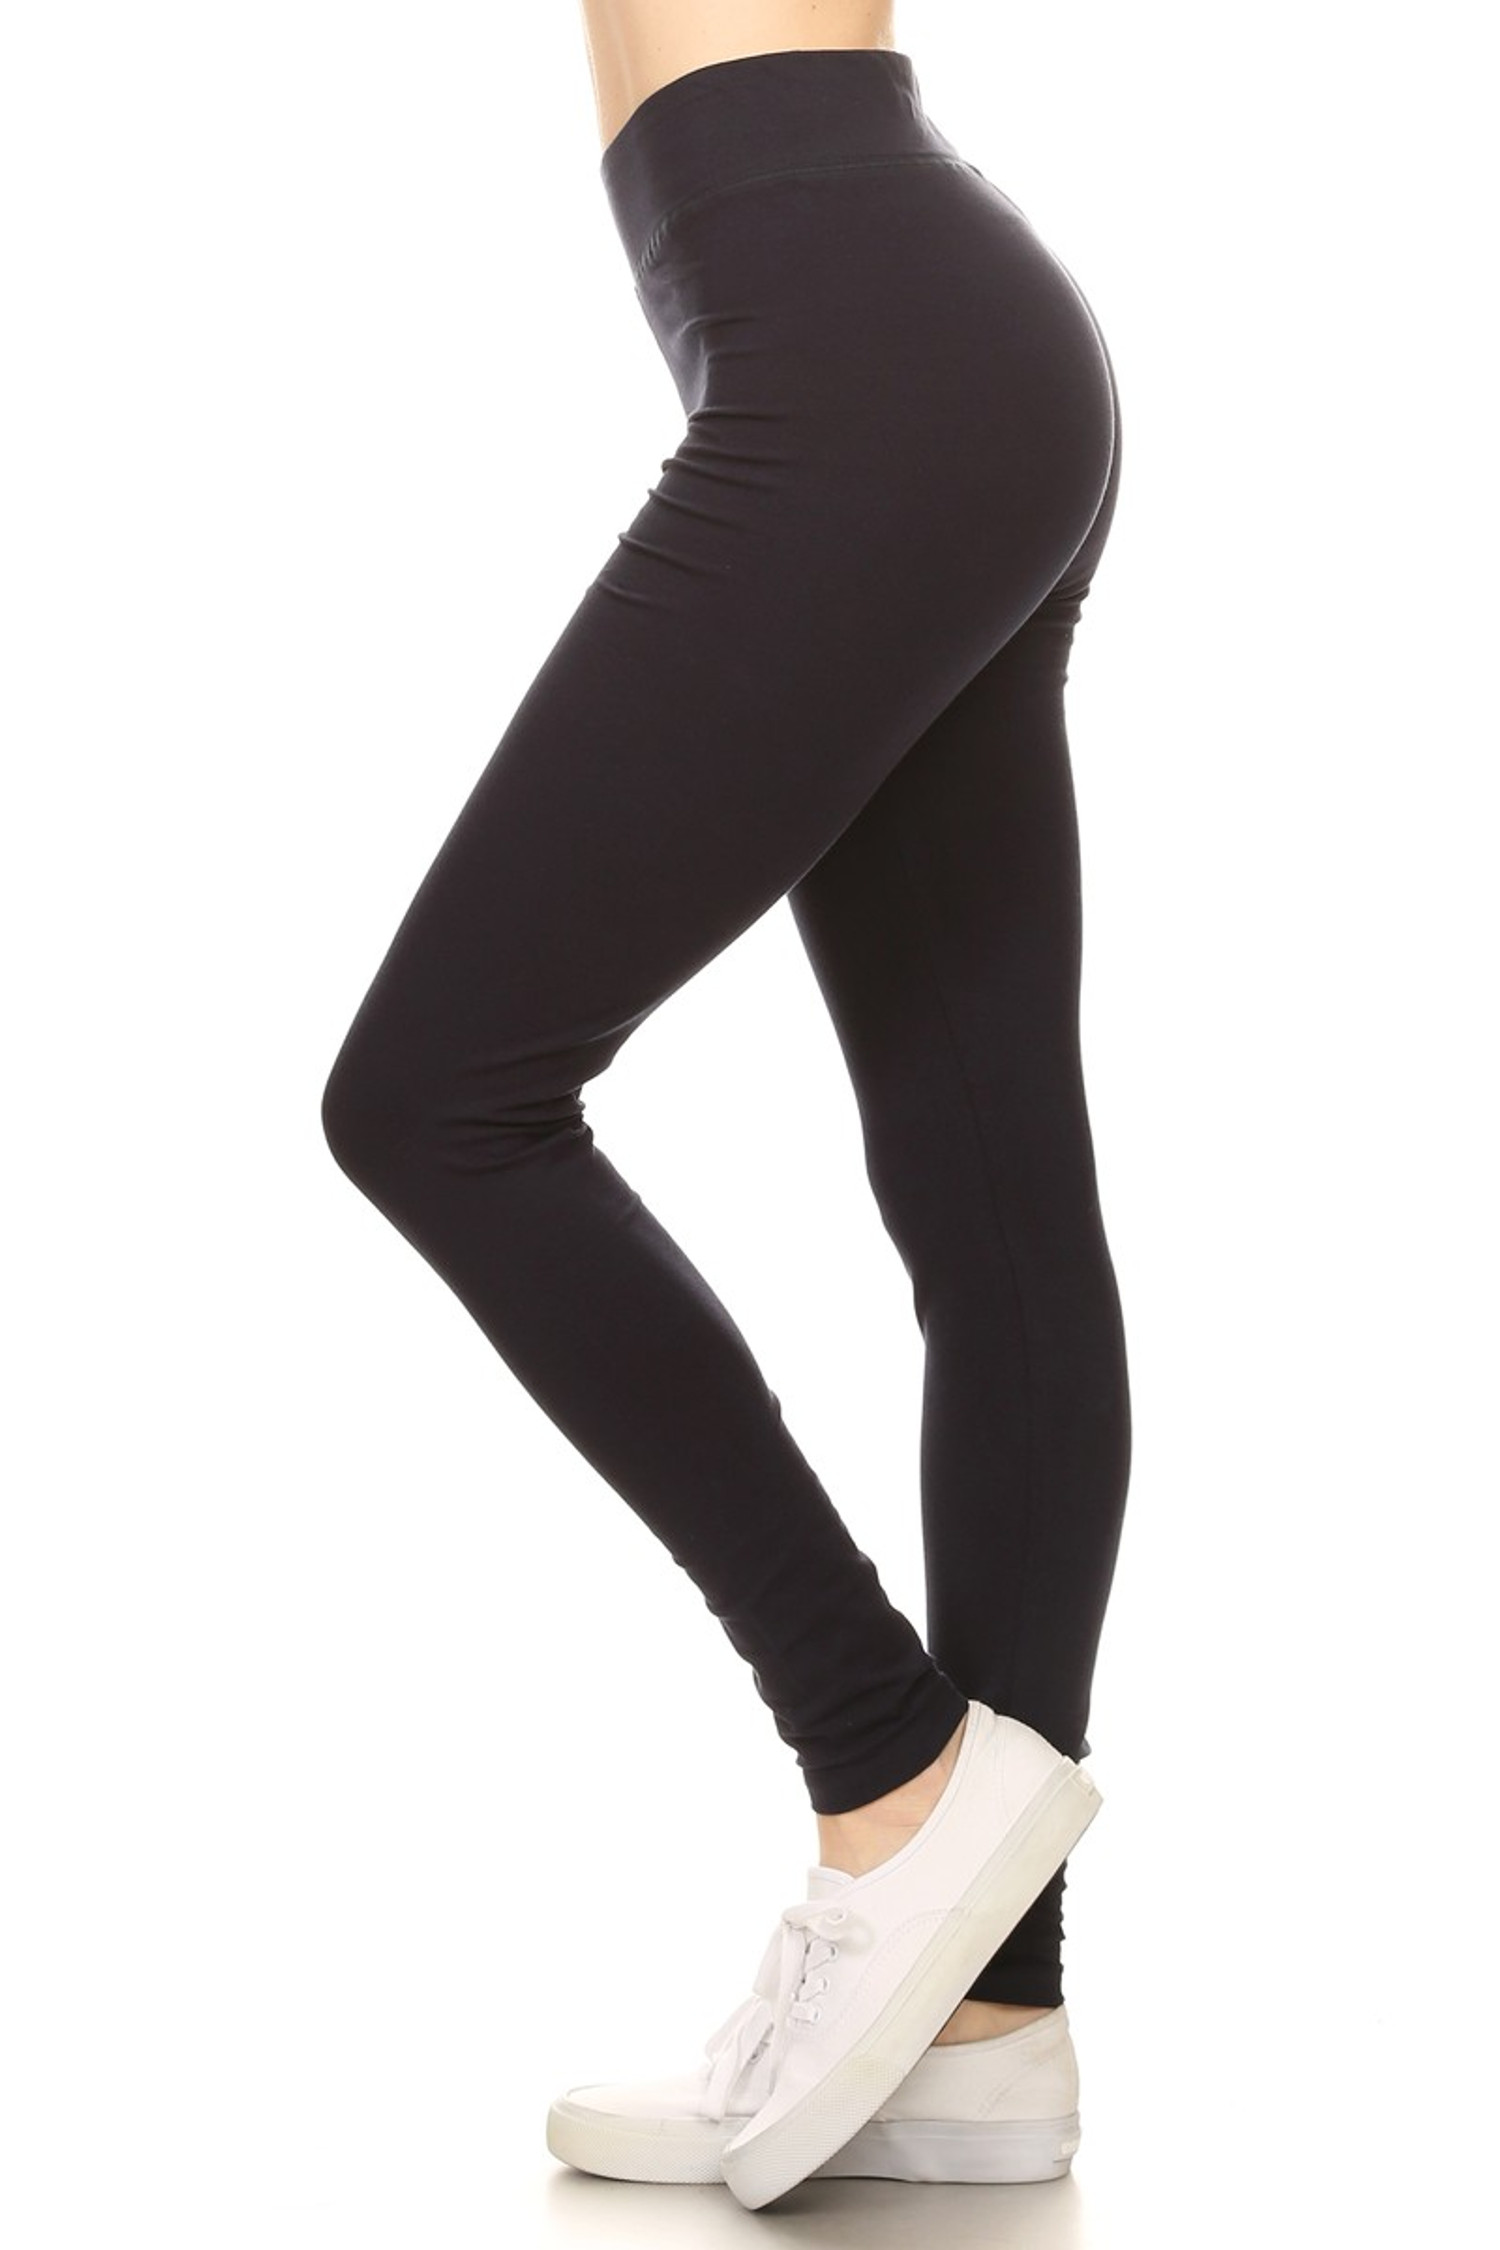 Side image of Navy High Waisted Cotton Sport Leggings